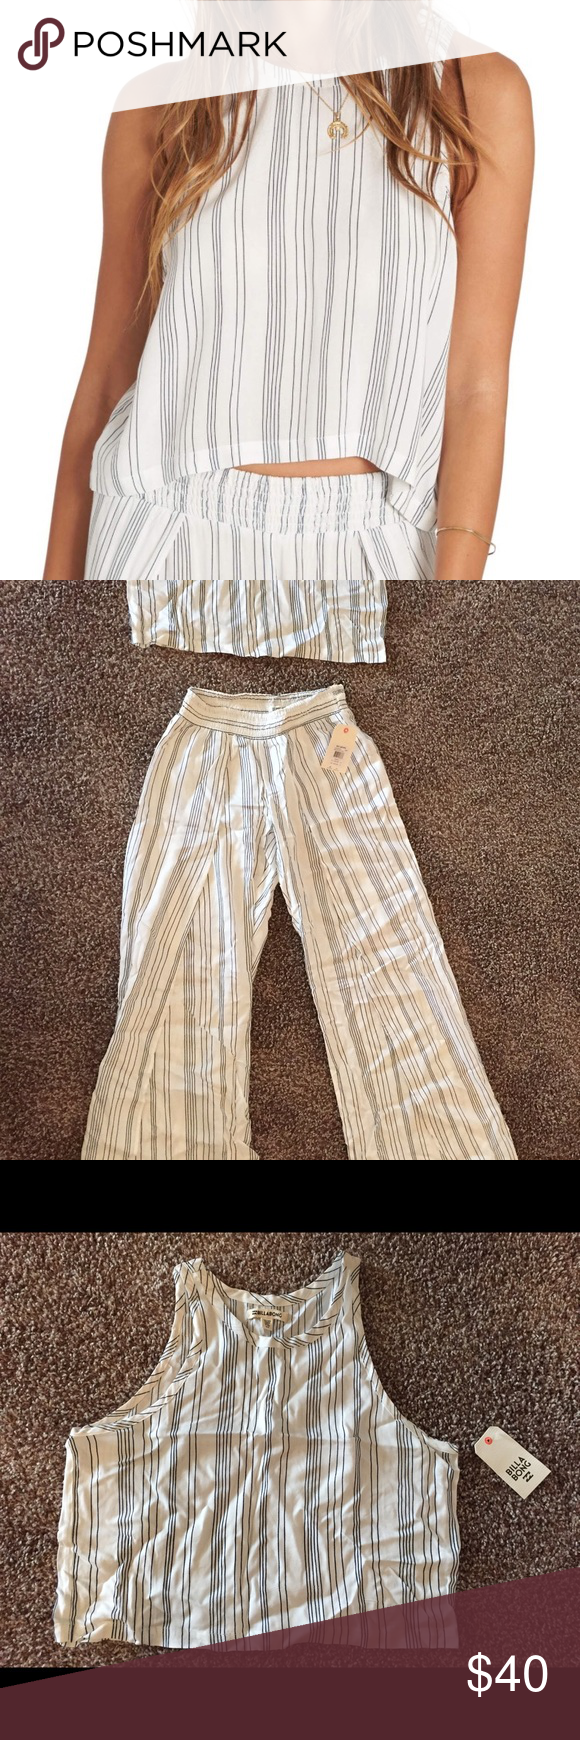 Billabong sweet flutter tank + wandering soul pant SUPER cute, lightweight, and soft summery outfit. Perfect for hot days, the beach, or lounging around :) BRAND NEW WITH TAGS! Purchased full price for $80.00 Billabong Tops Tank Tops